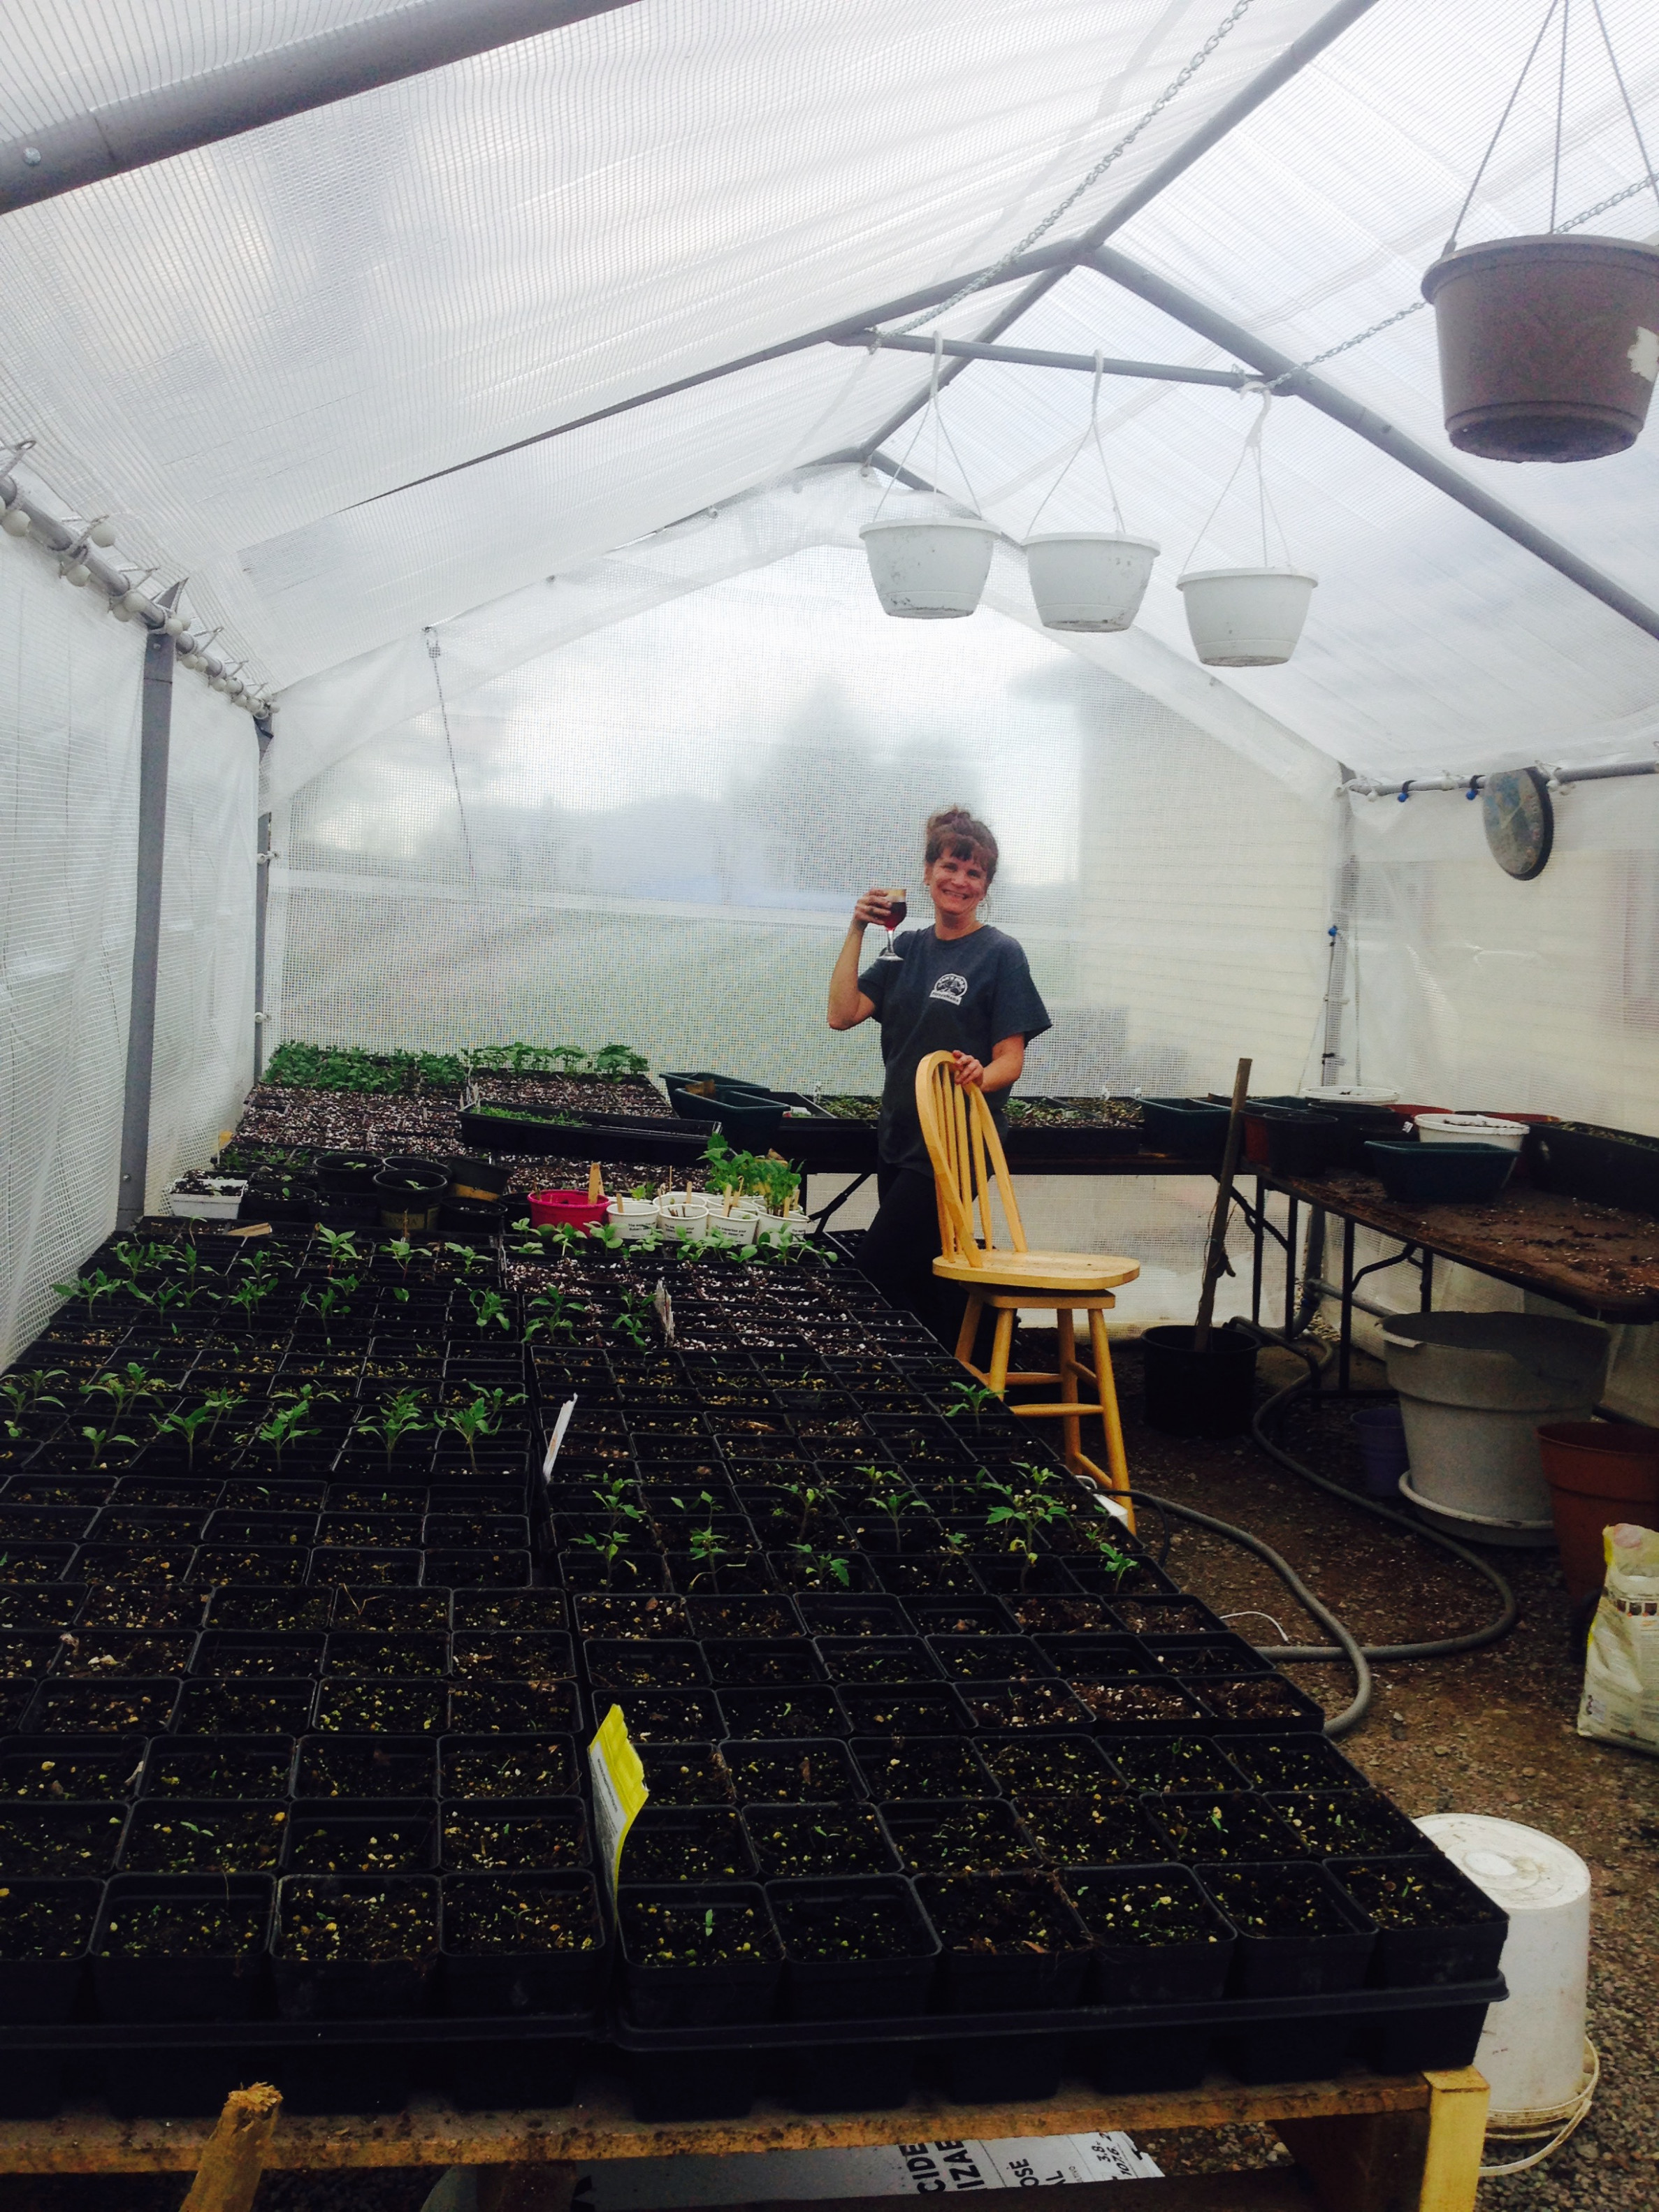 Carport Greenhouse Conversions Are Economical And Easy By ..